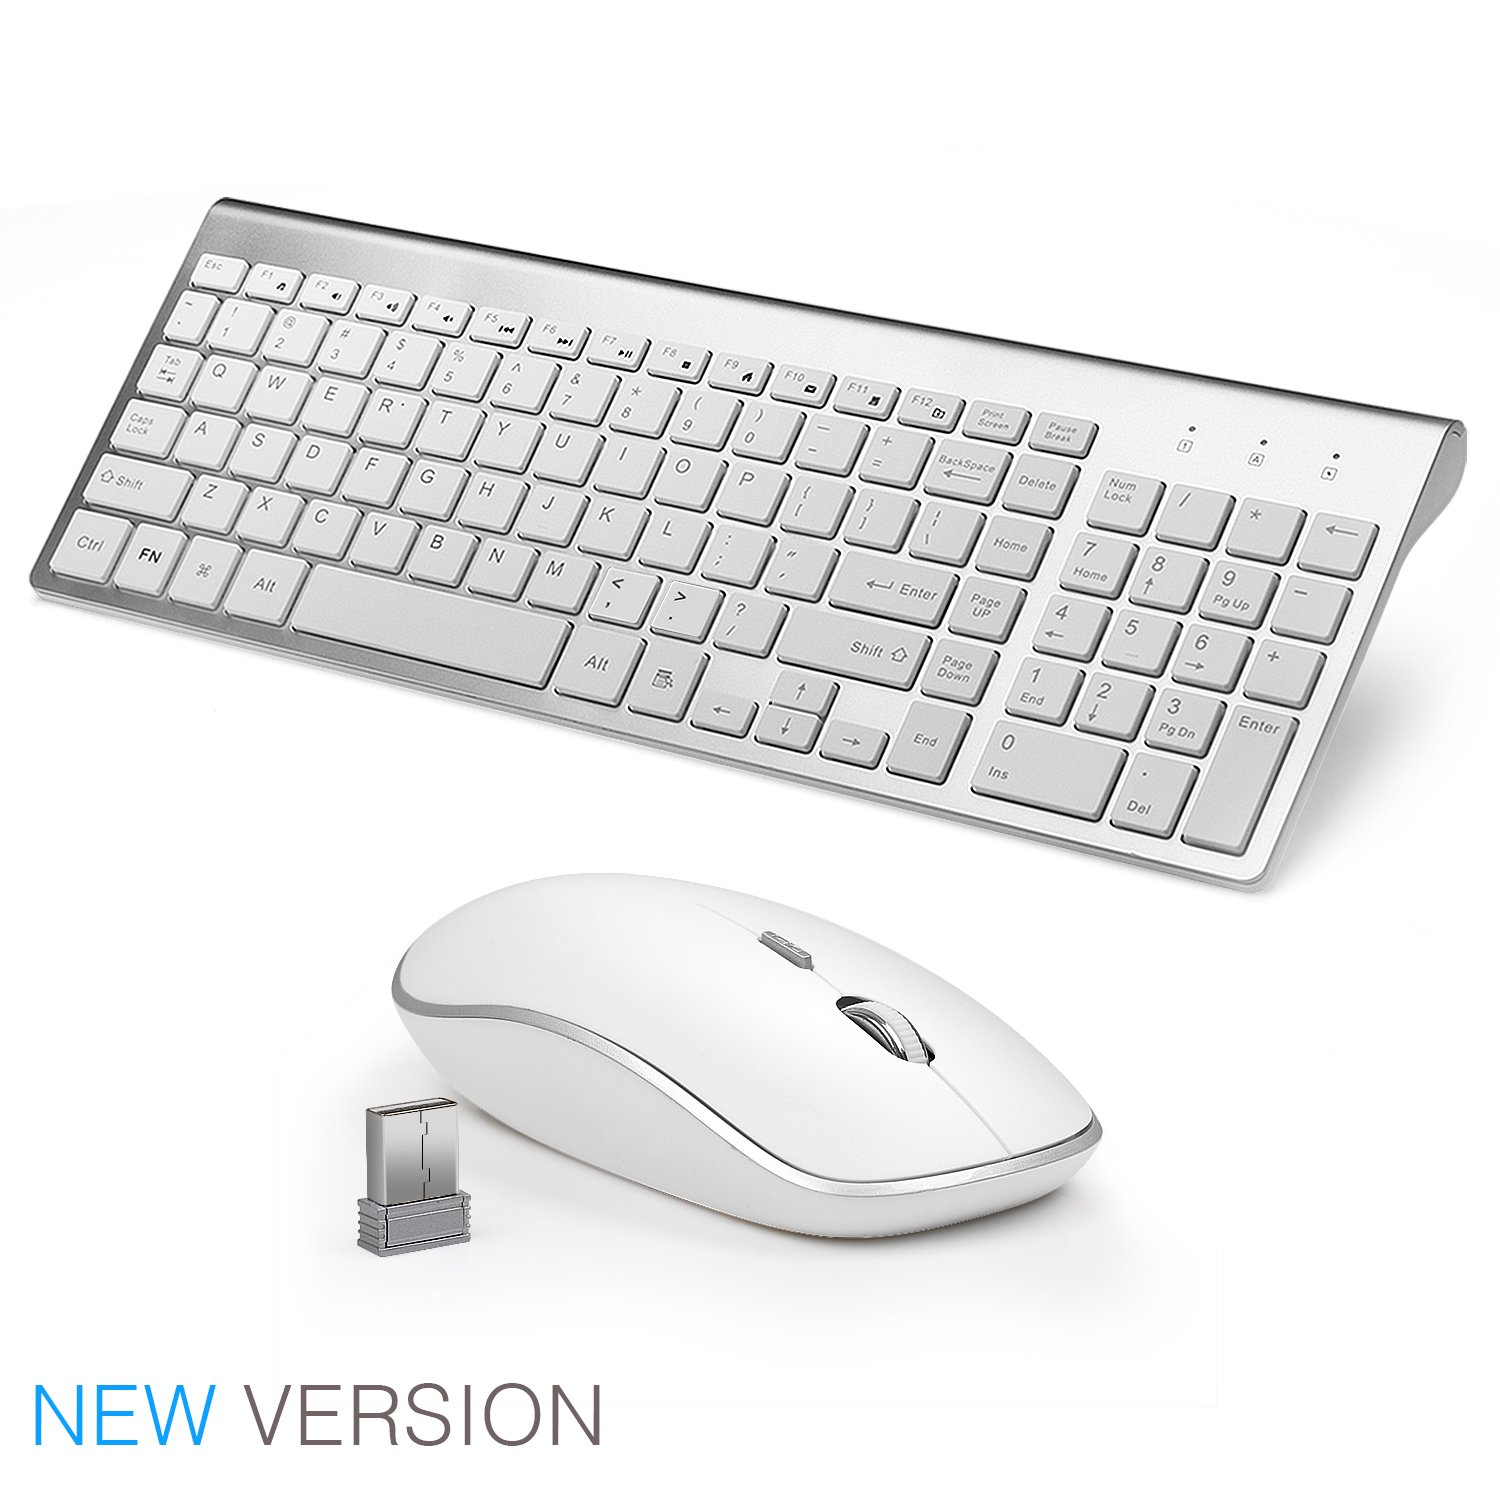 JOYACCESS Wireless Keyboard and Mouse Combo Full-size Whisper-quiet Compact Keyboard Mouse- Silver